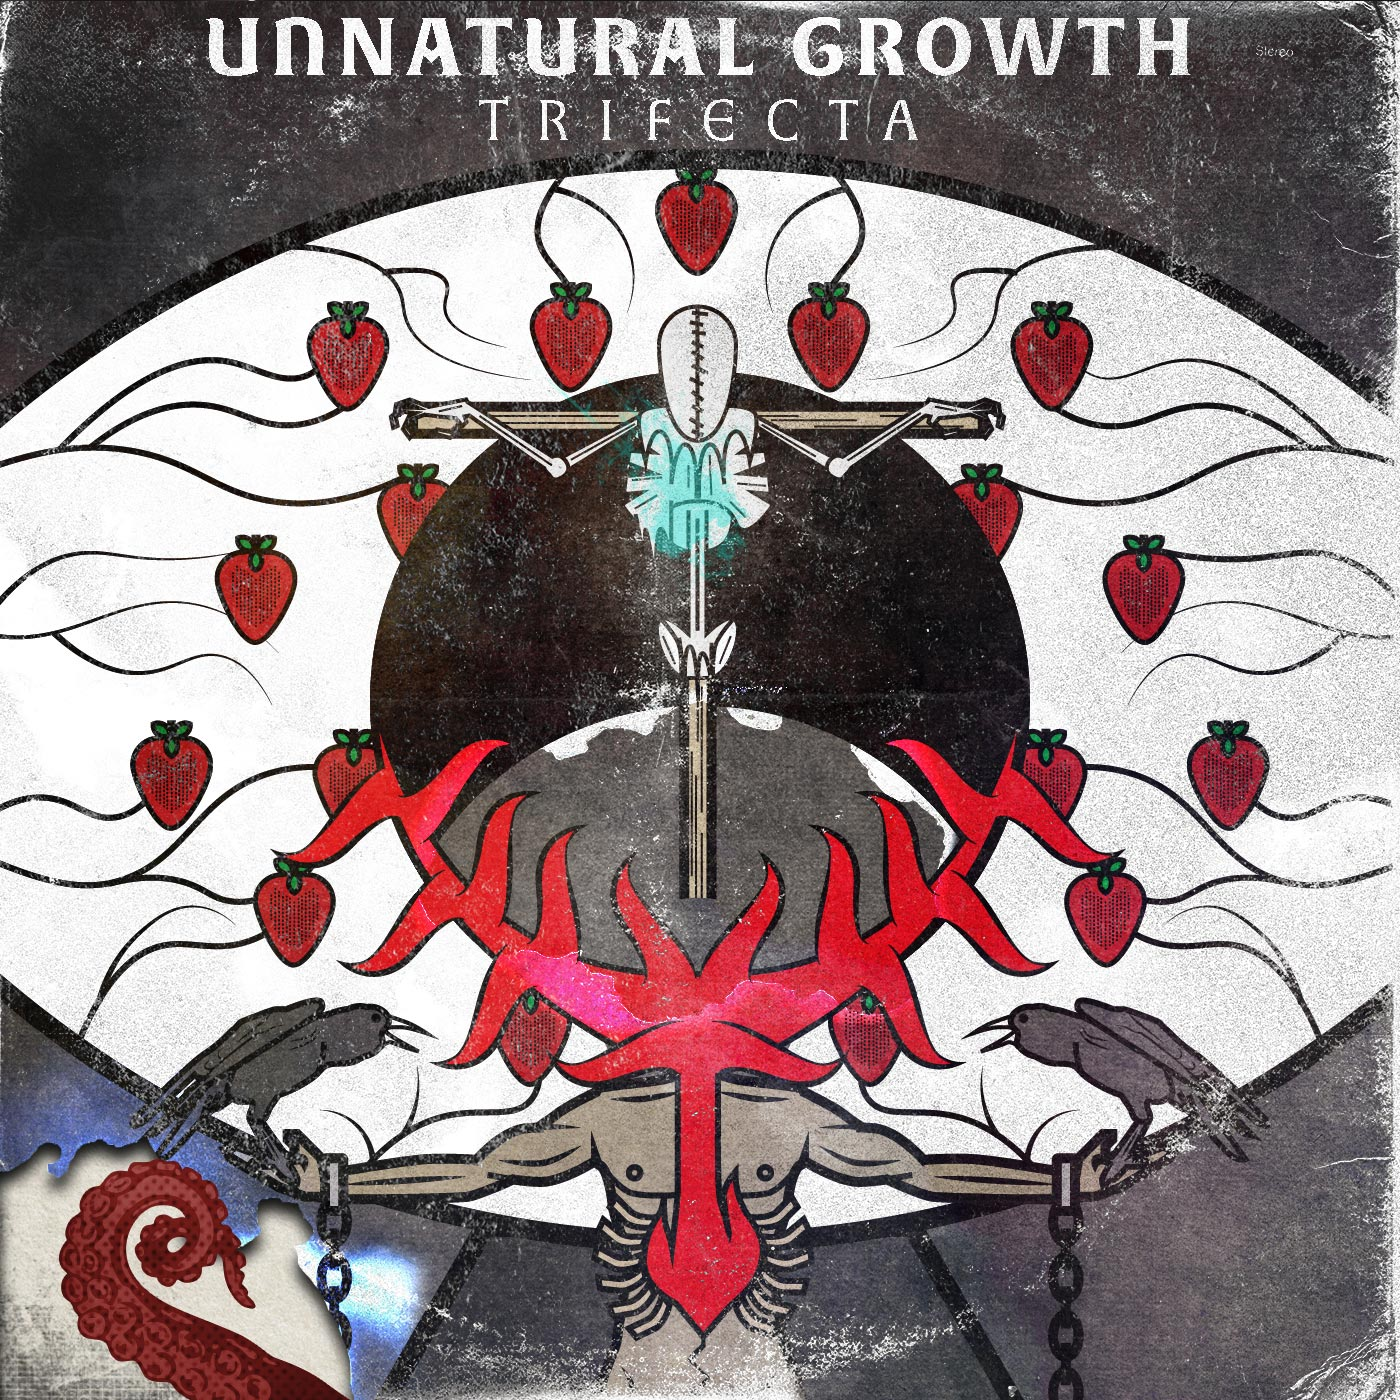 Cover for Drabblecast Unnatural Growth Trifecta, by Declan Keane